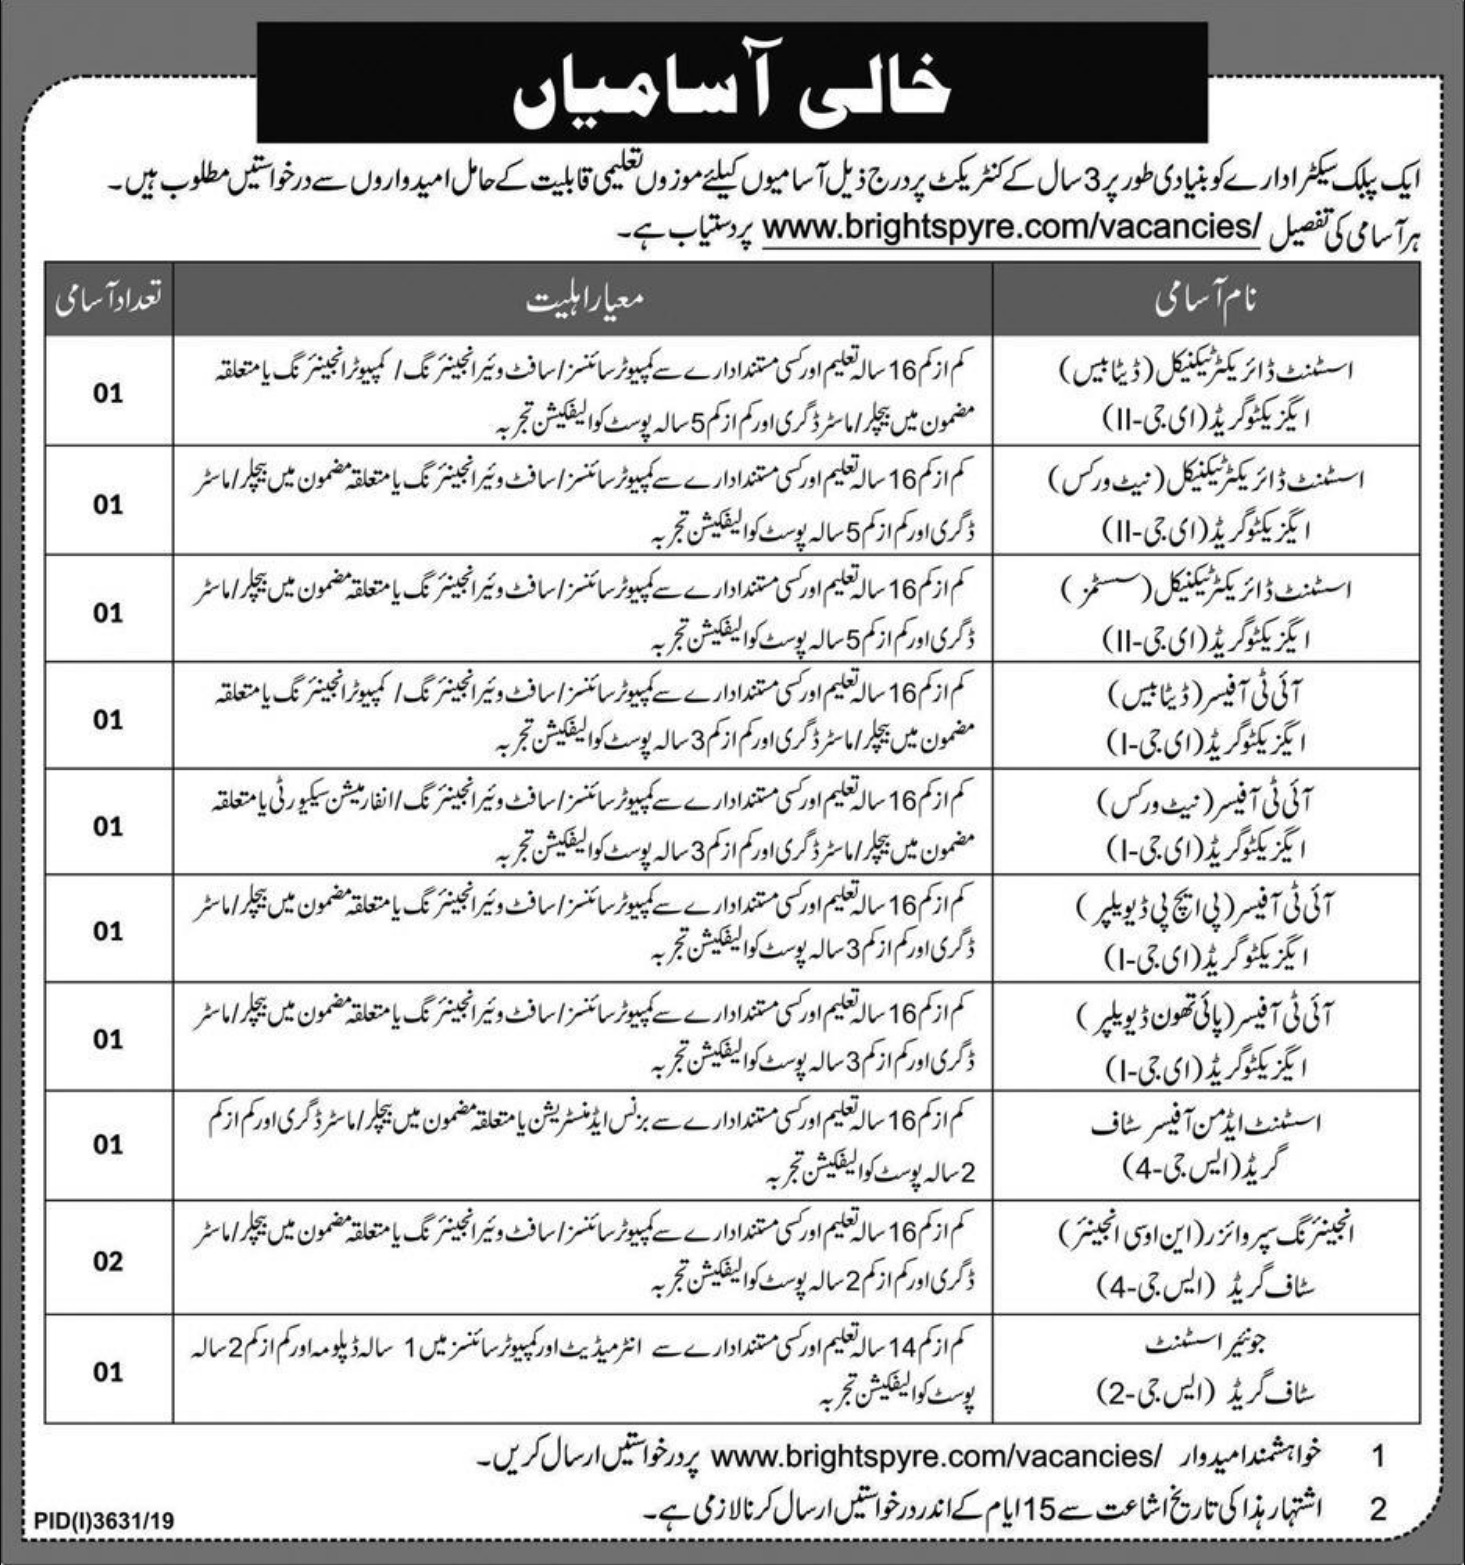 Public Sector Organization Jobs 2020 Apply Online